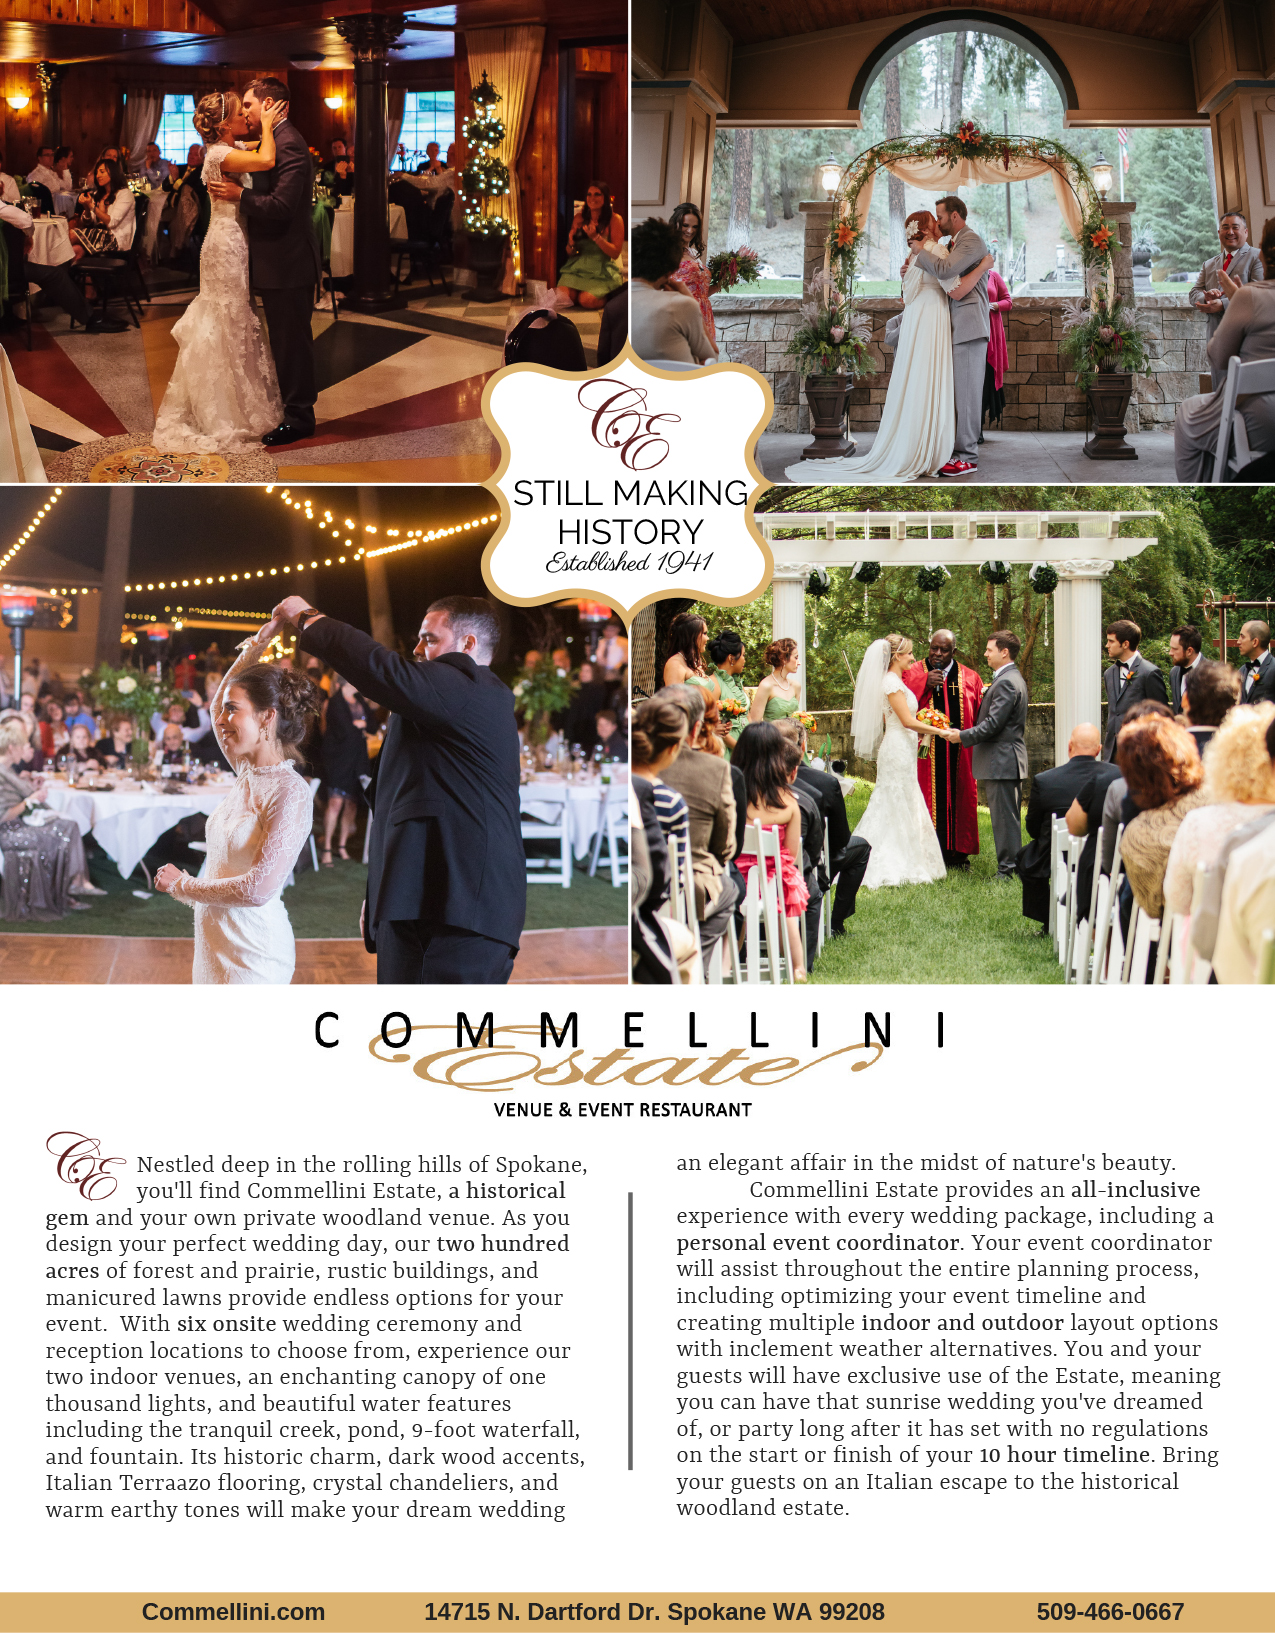 Commellini Estate WRG Ad 2019 WEB